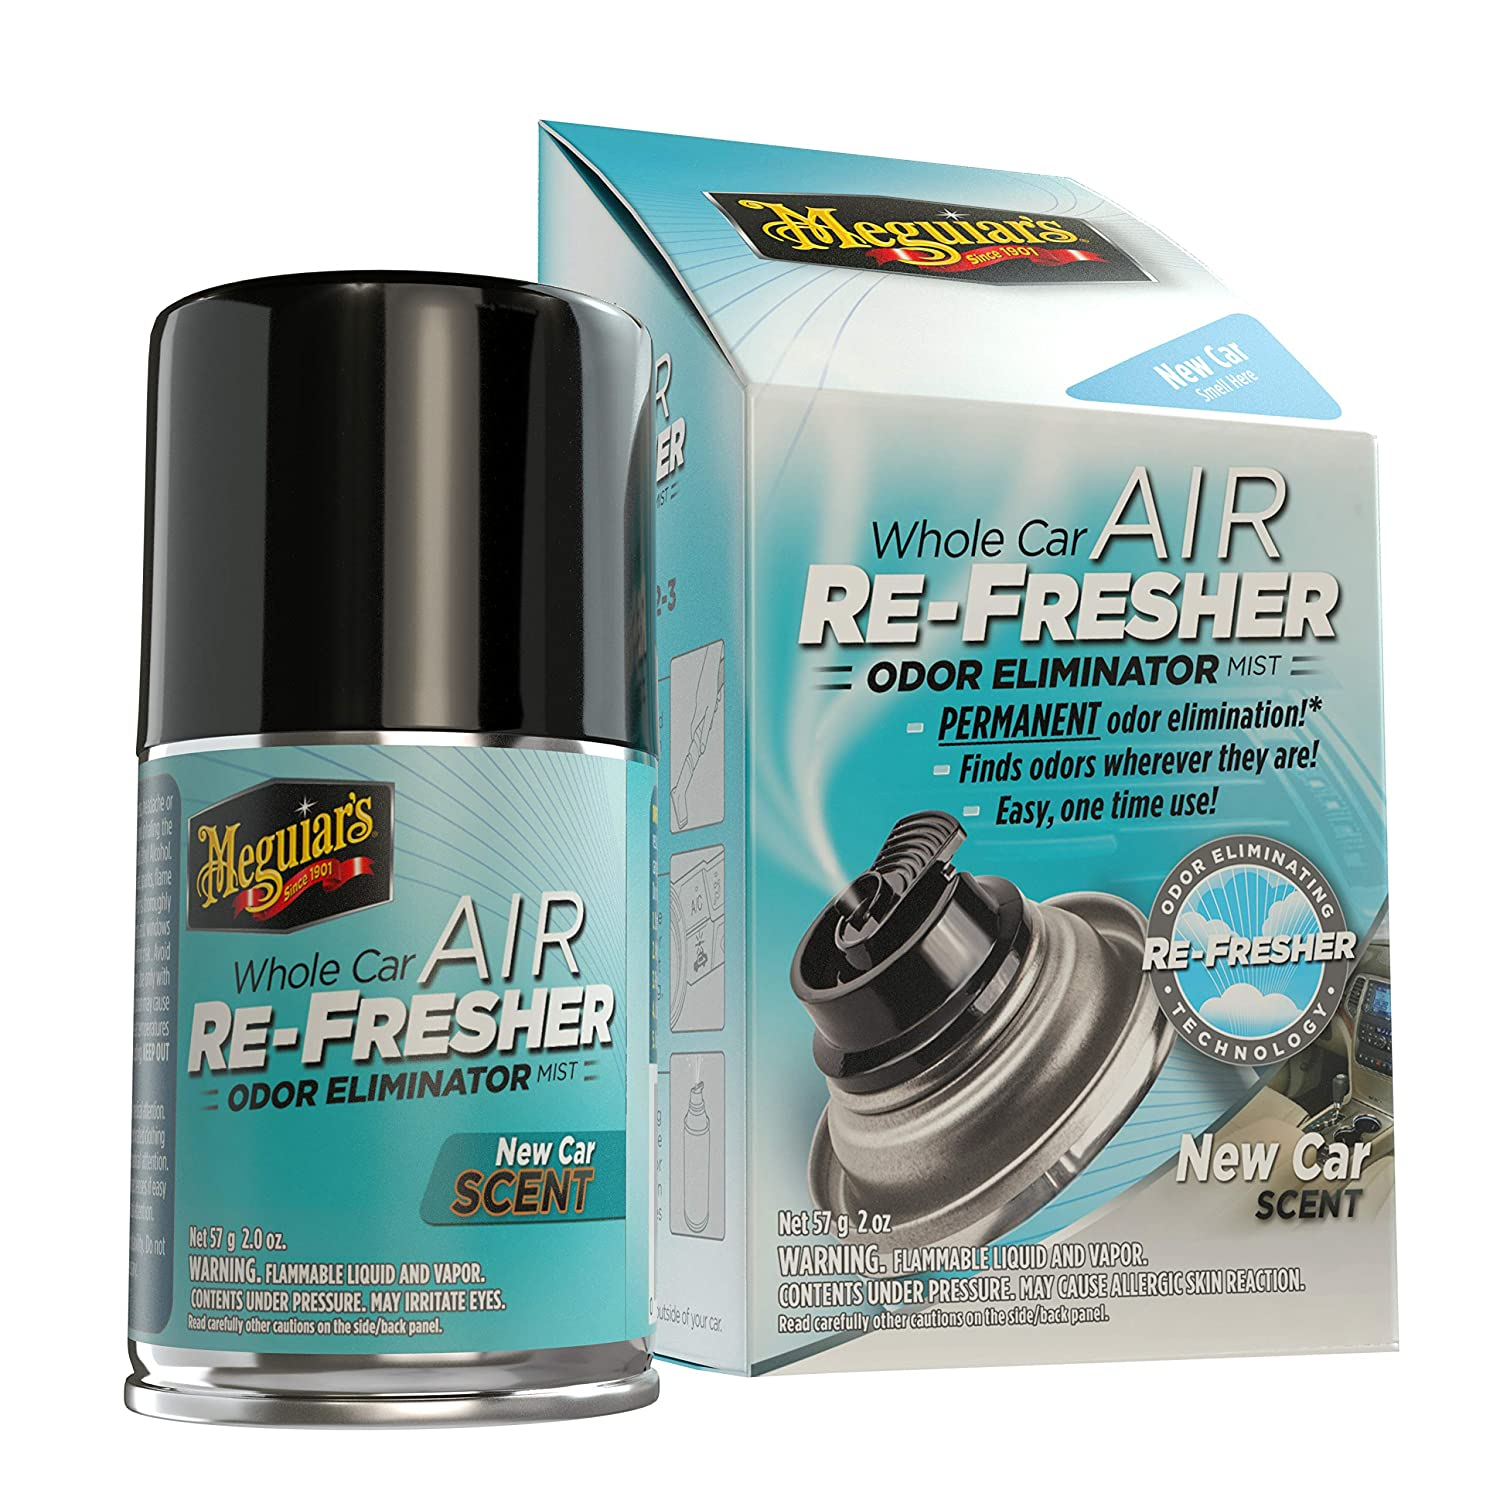 Meguiar's Whole Air Re-Fresher